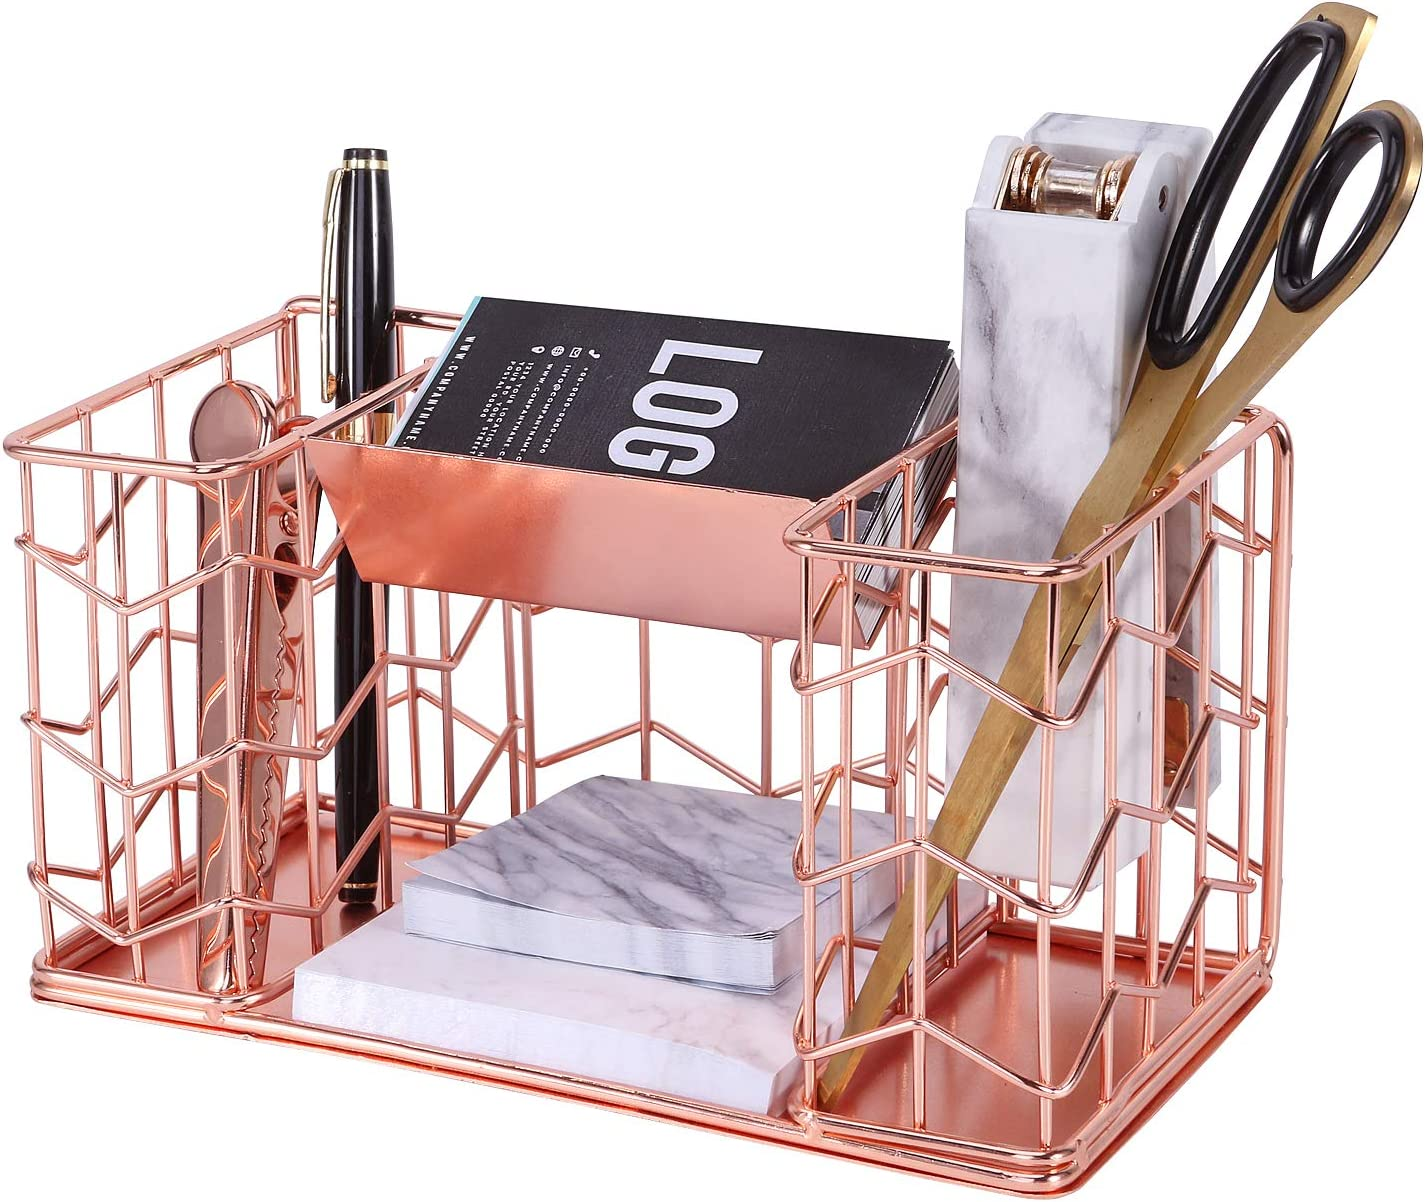 Nugorise Rose Gold Business Card Plus Pen Holder Organizer, 4 Compartments - 2 Pen Holders, Business Card Holder and Memo Holder, Multi-Functional Wire Stationery Storage Caddy